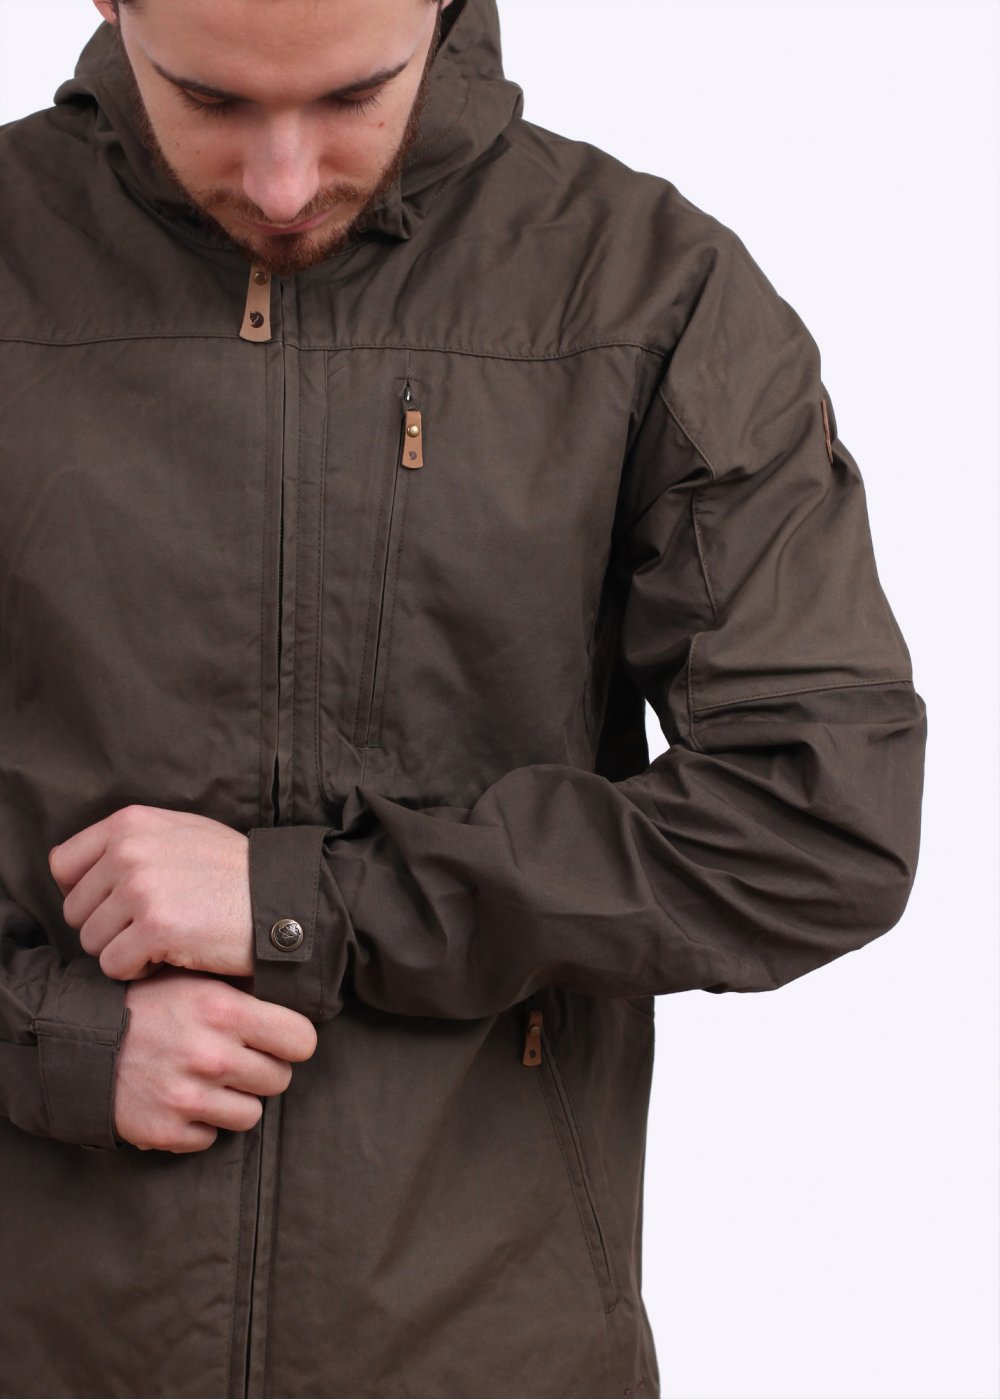 Mens Leather Jackets Sale Uk Images Cheap Room